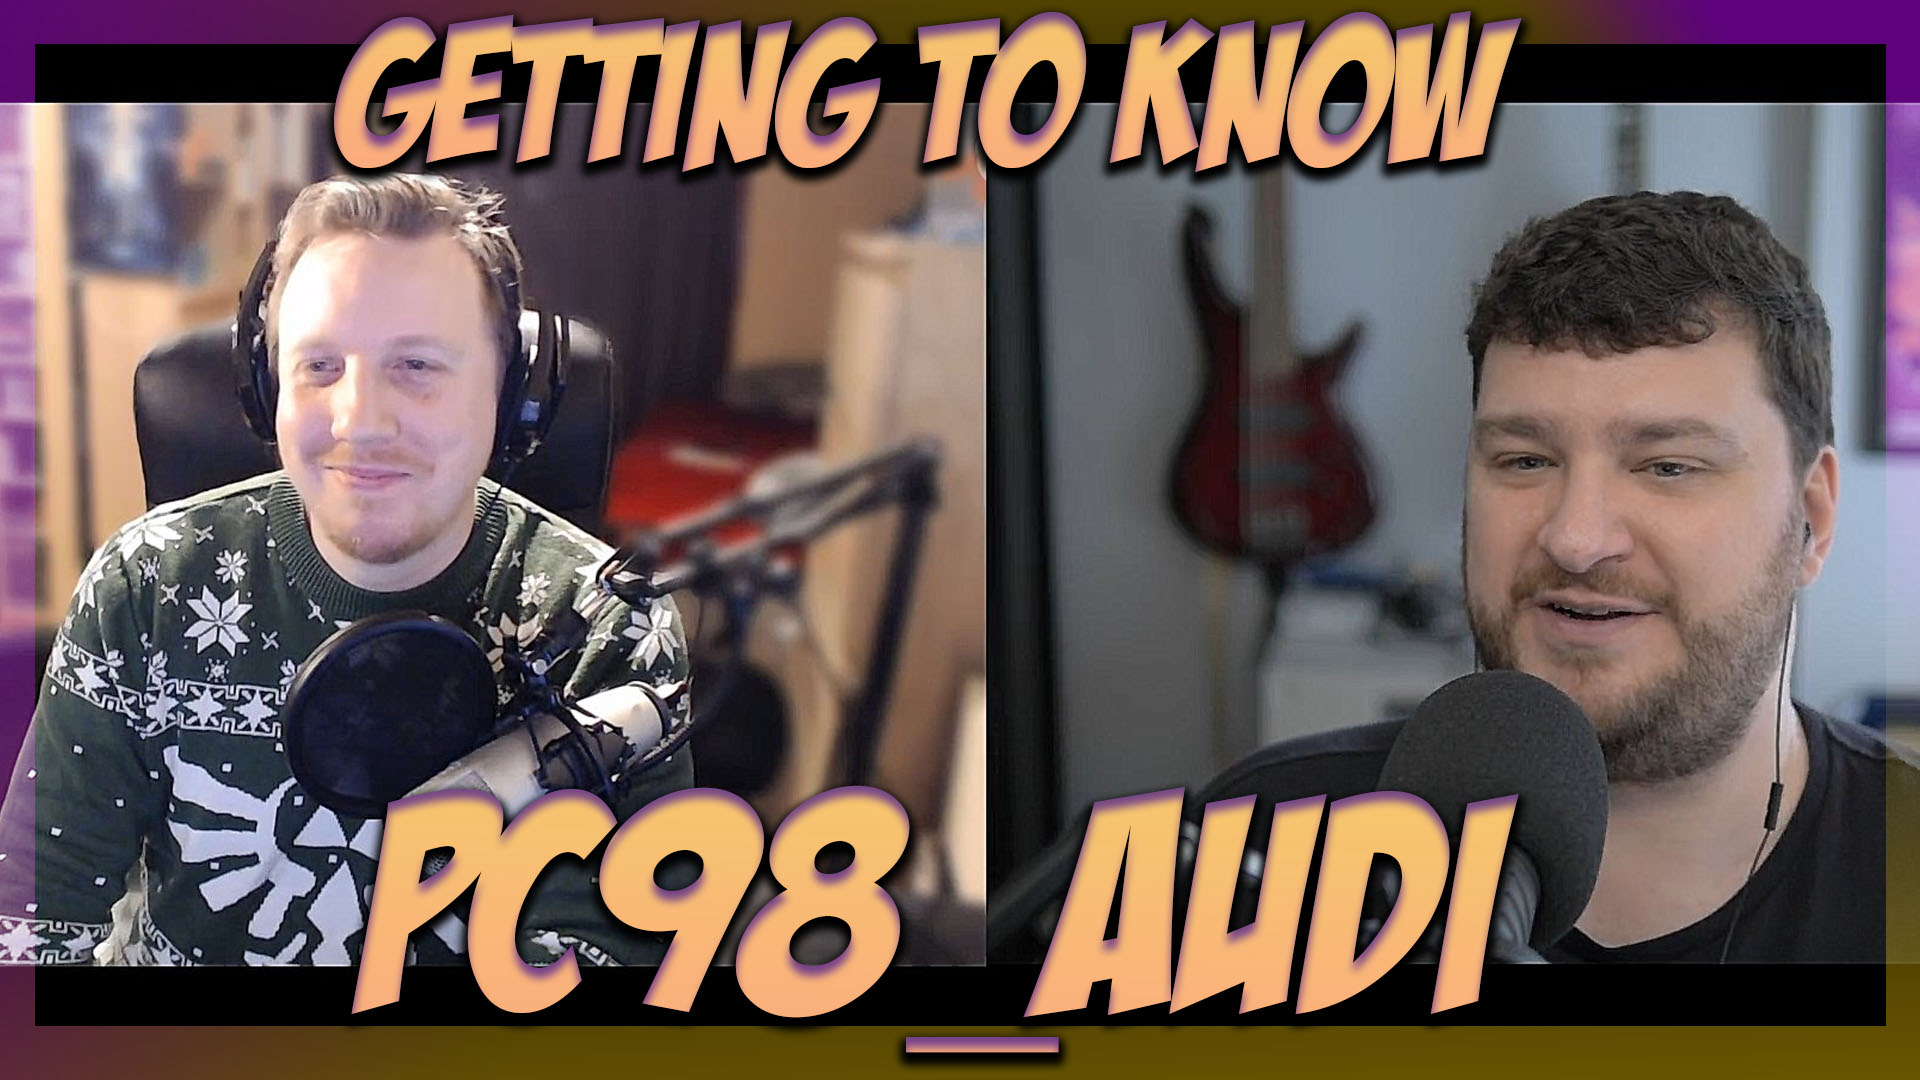 Interview With PC98_Audi